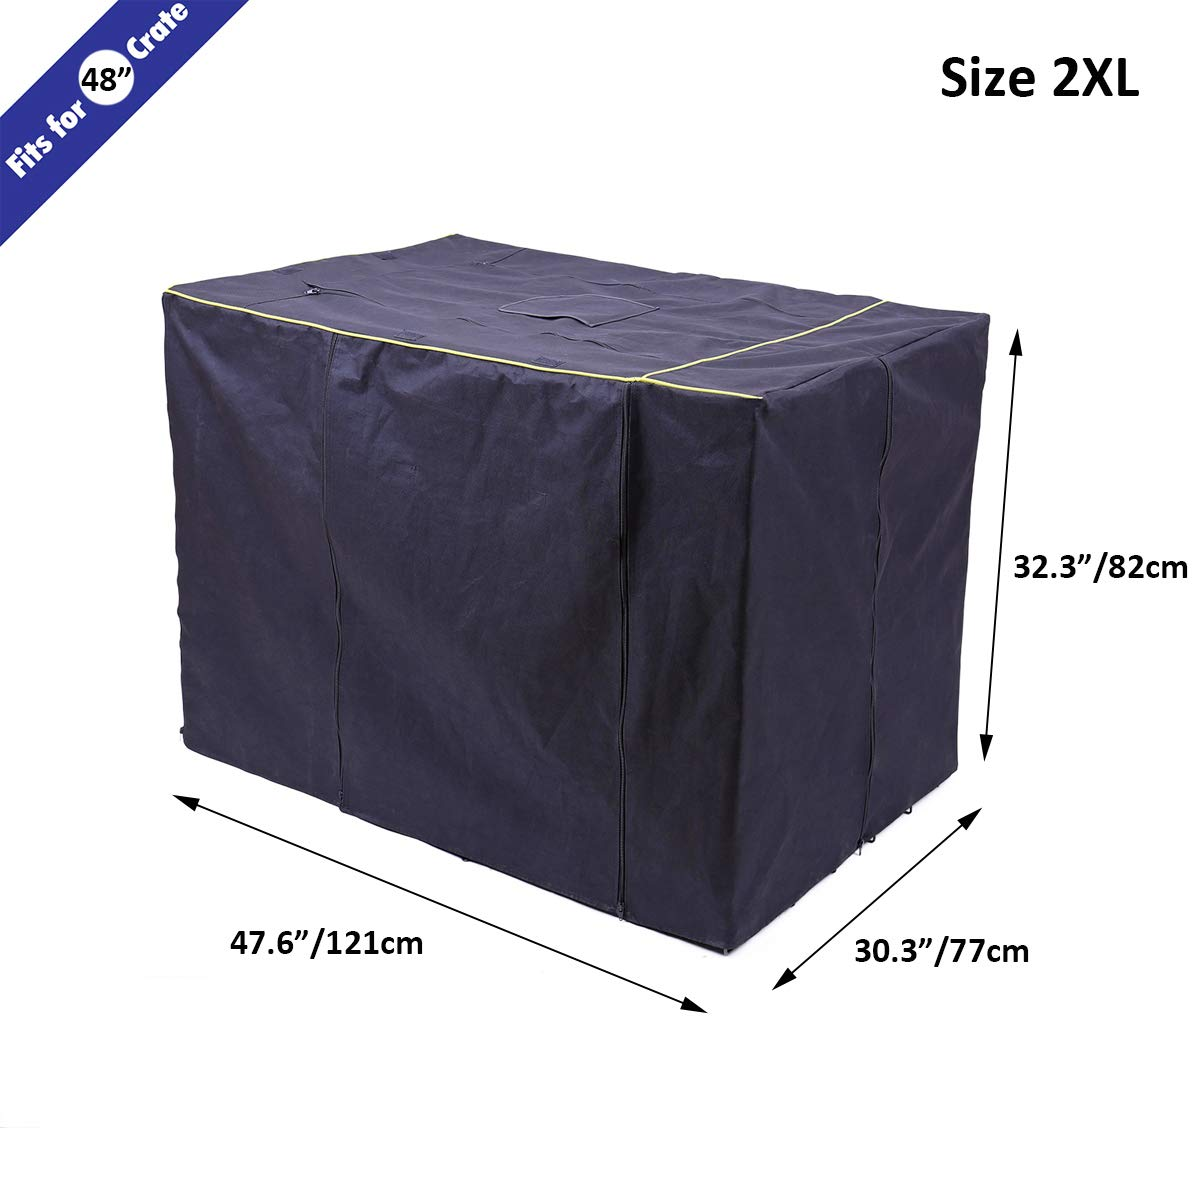 Speedy Pet Waterproof Dog Kennel Covers Durable Windproof Dust-Proof Crate Cover Indoor/Outdoor for Dog Cage Black (2XL(47.6'' x 30.3'' x 32.3''), Black) by Speedy Pet (Image #6)